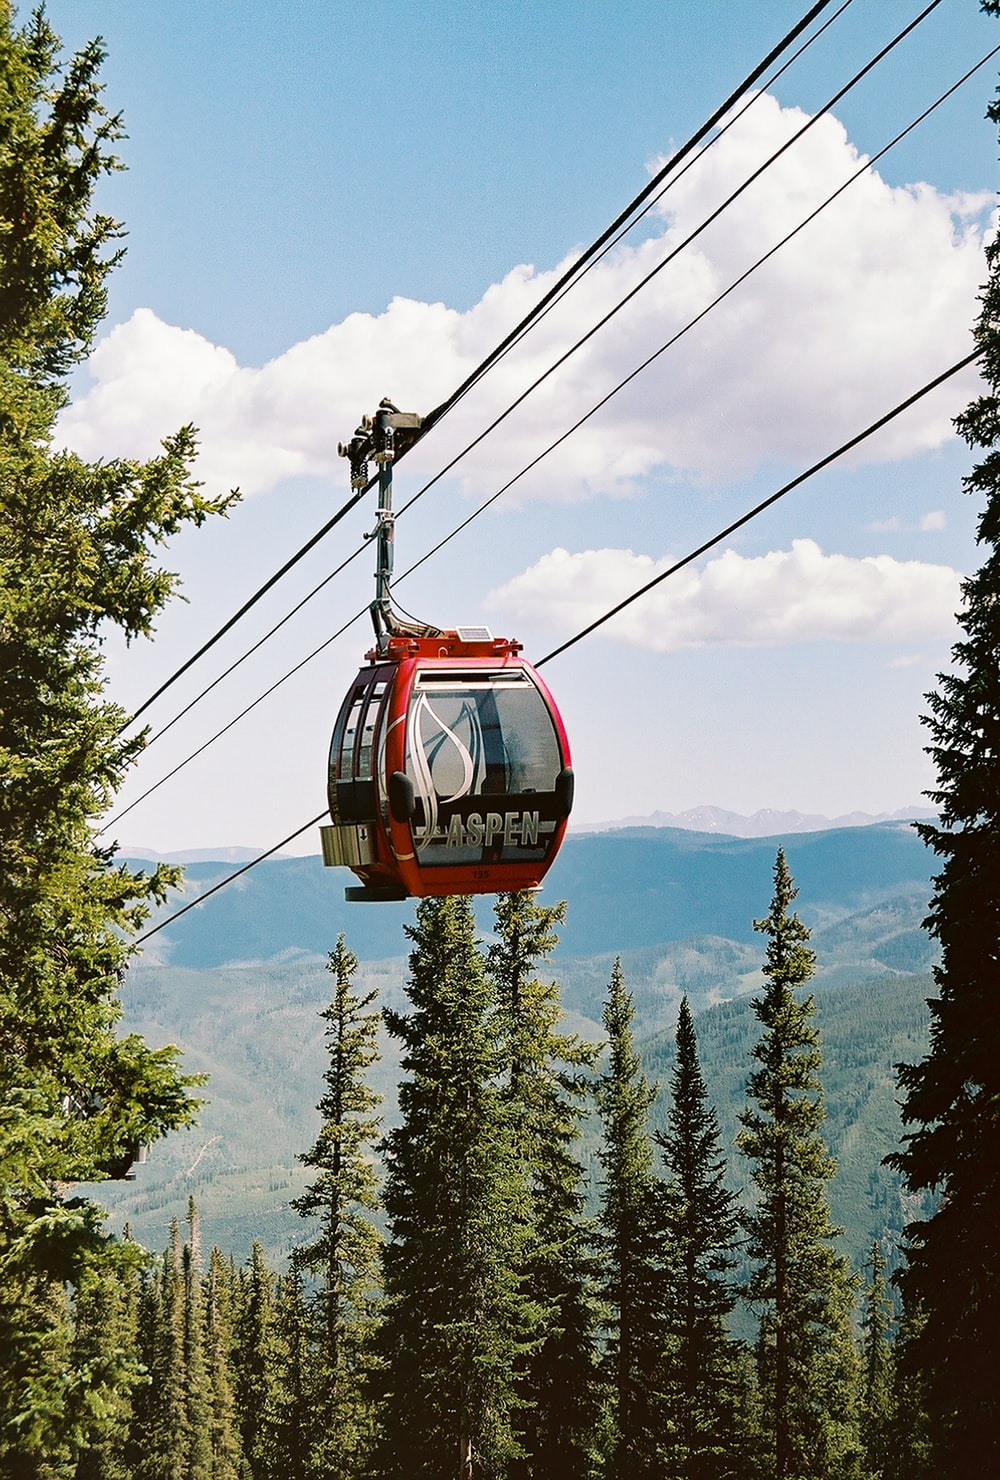 red cable car over green trees during daytime